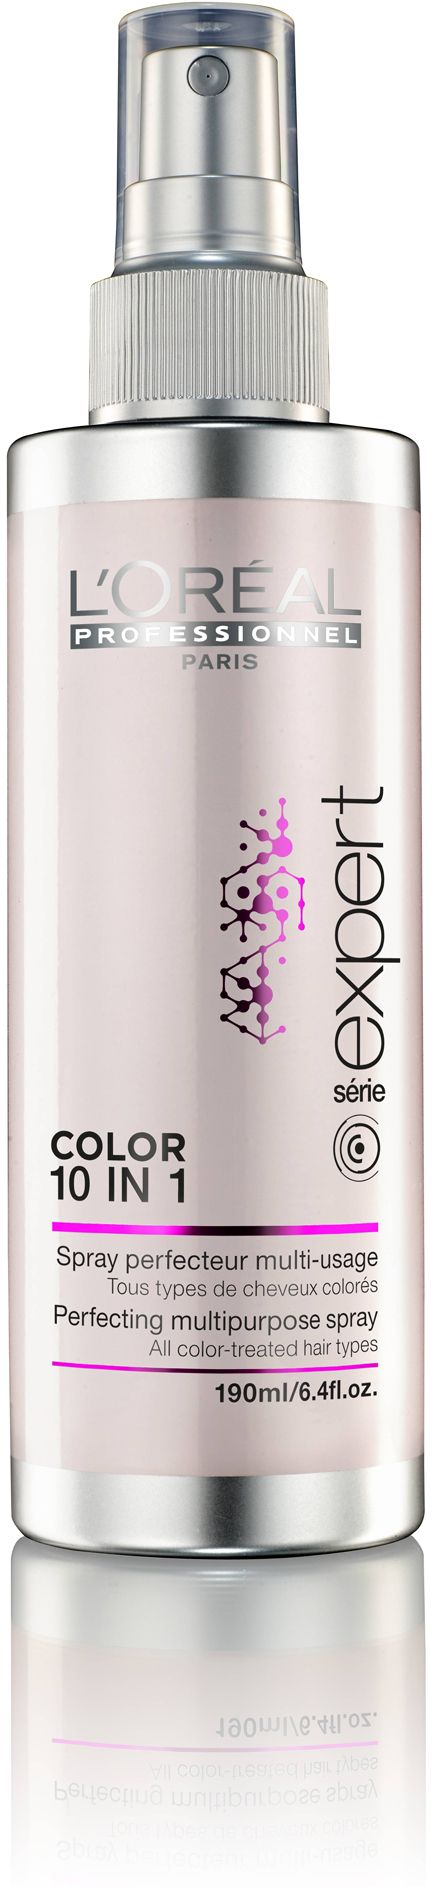 L'Oréal Professionnel - Vitamino Color A-OX 10-in-1 Reviews | beautyheaven